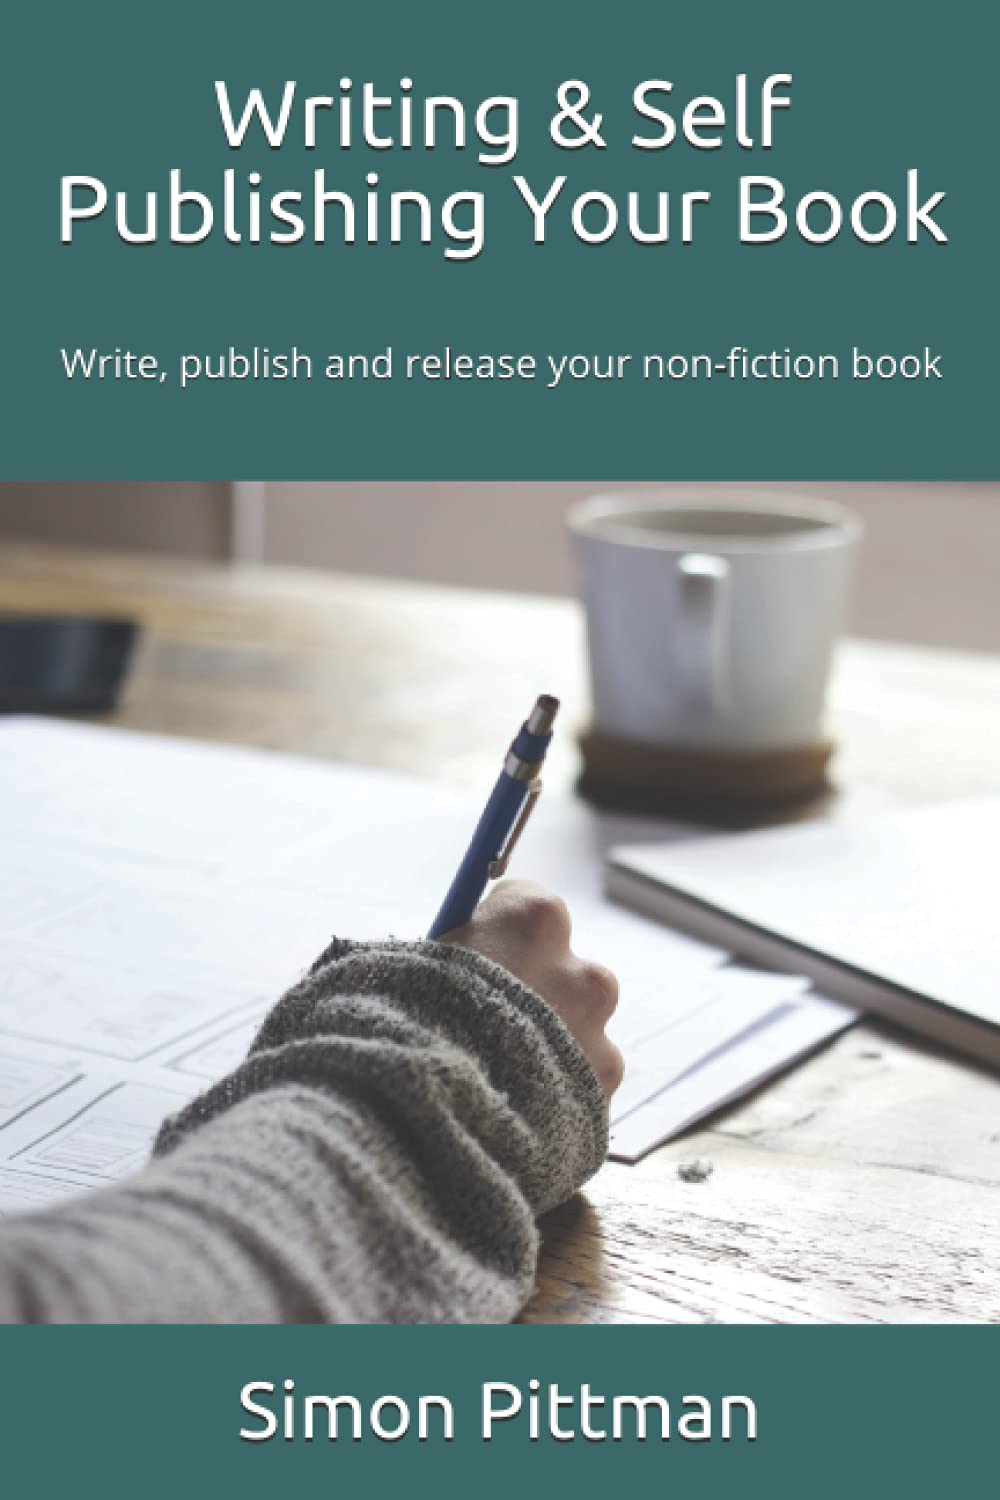 Writing & Self Publishing Your Book